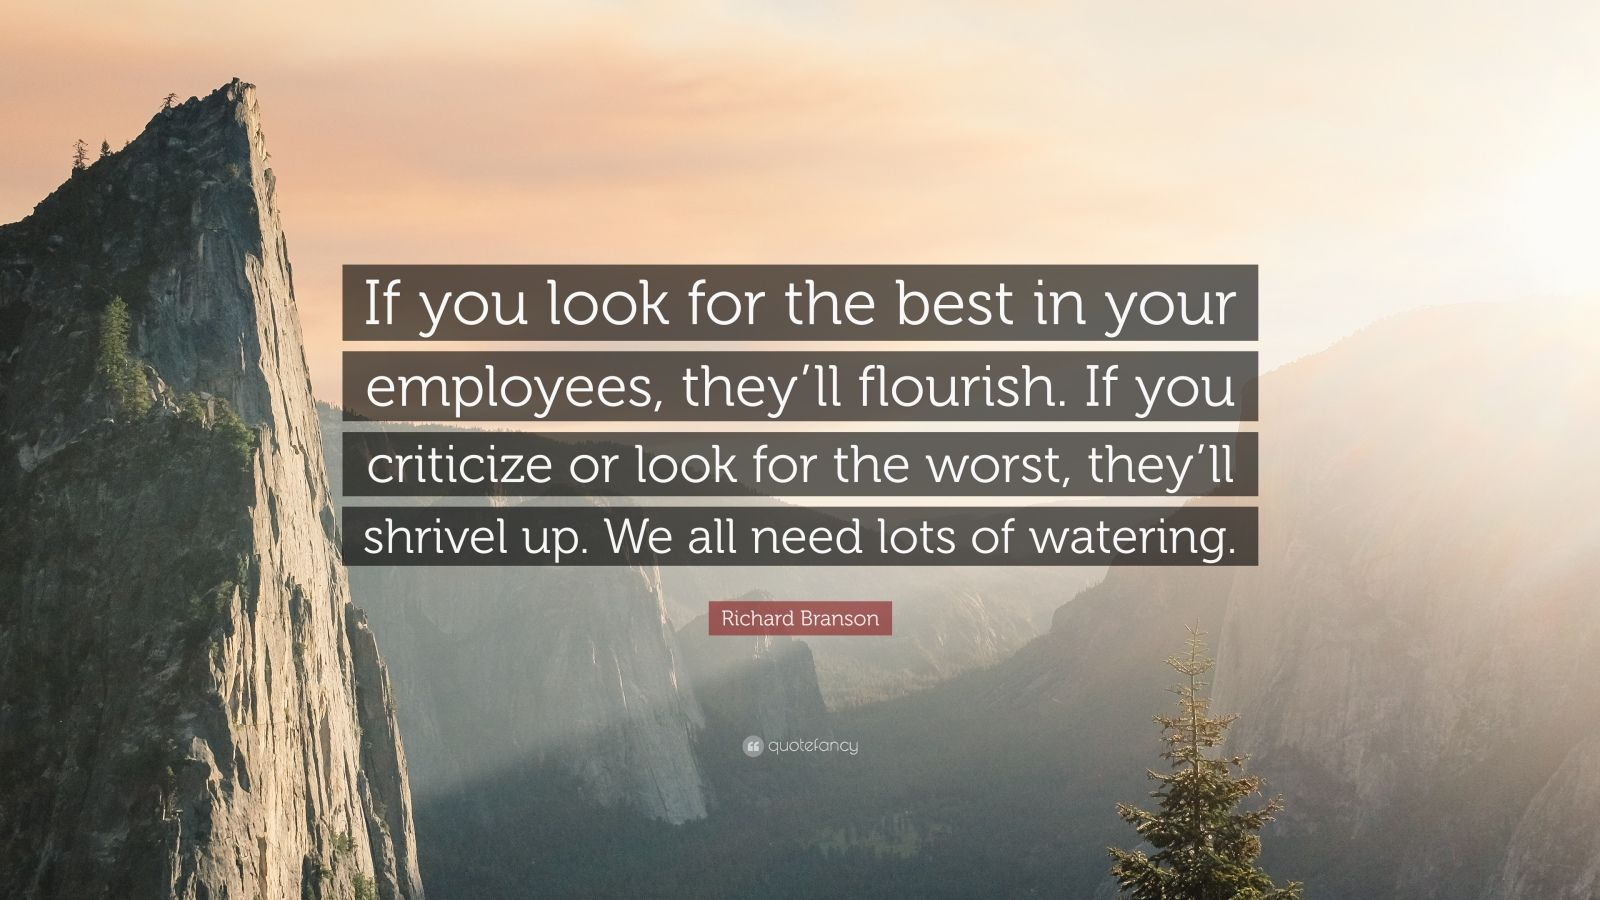 """Richard Branson Quote: """"If you look for the best in your employees, they'll flourish. If you criticize or look for the worst, they'll shrivel up. We all need lots of watering."""""""